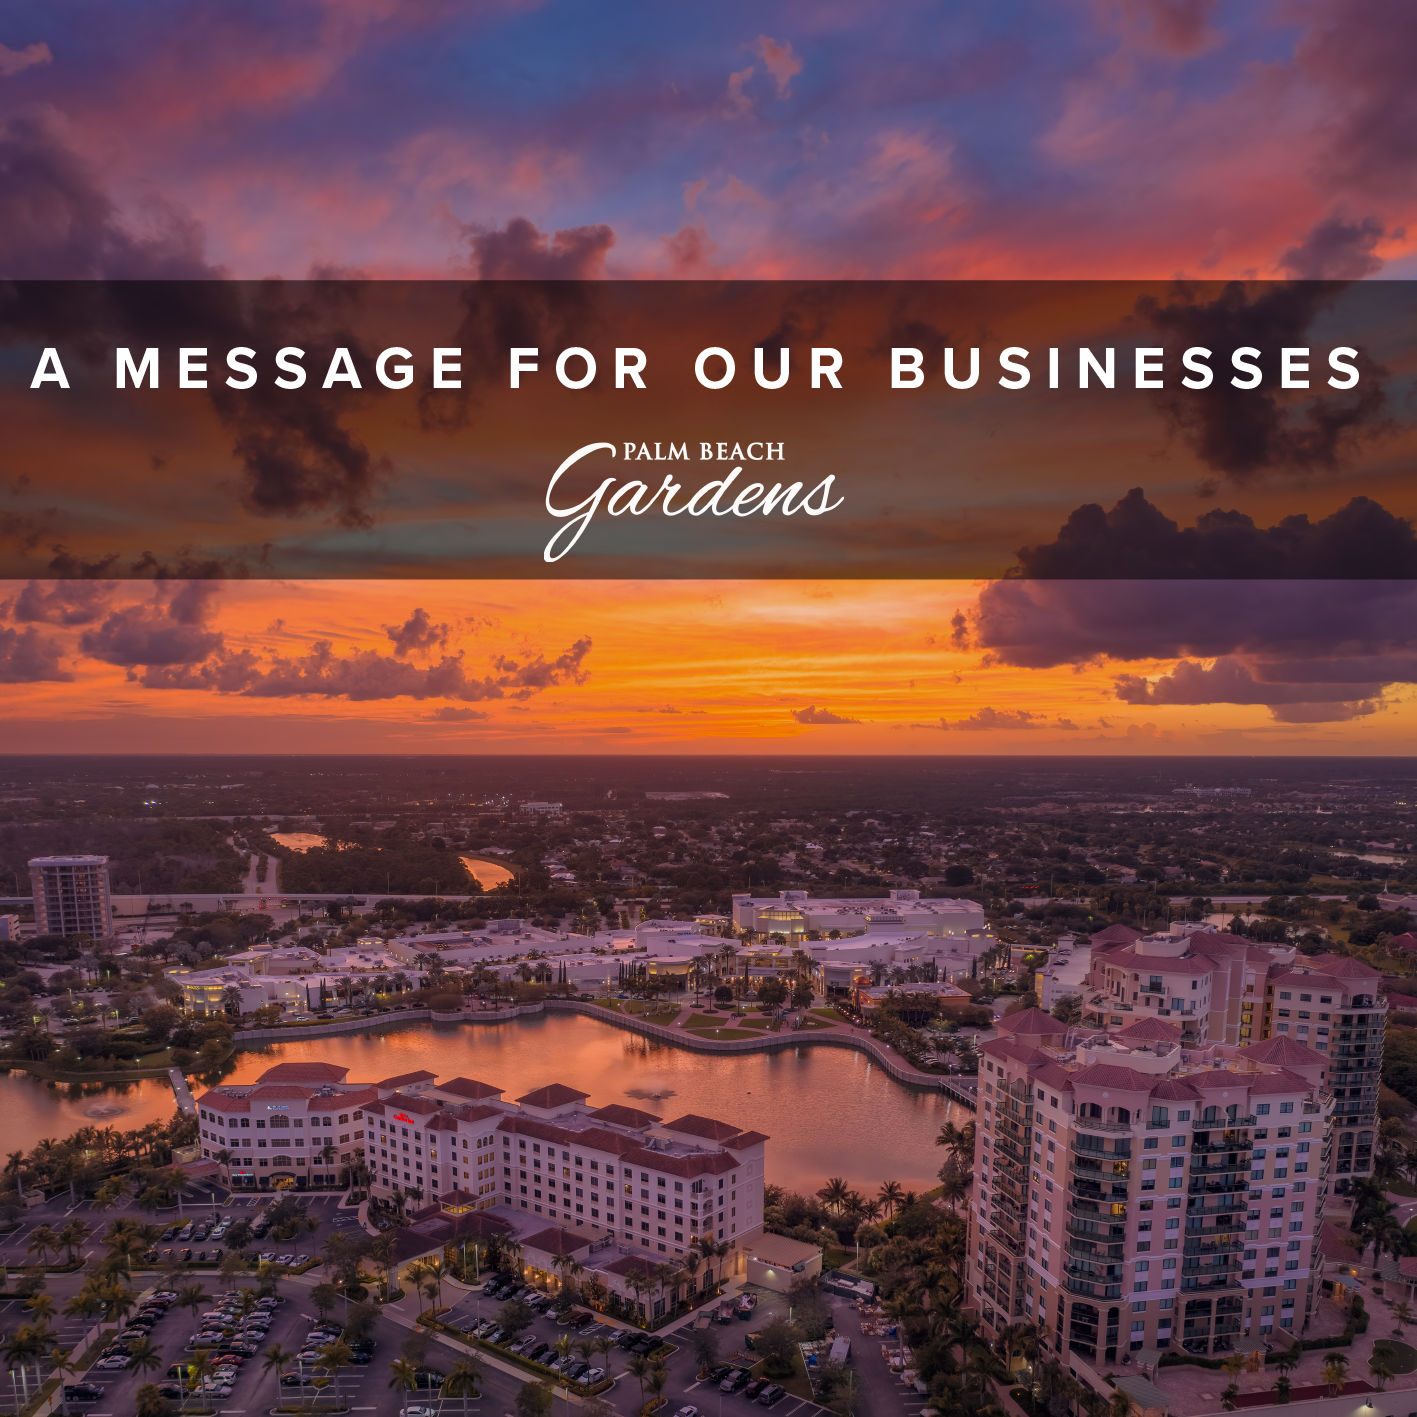 A Message For Our Businesses